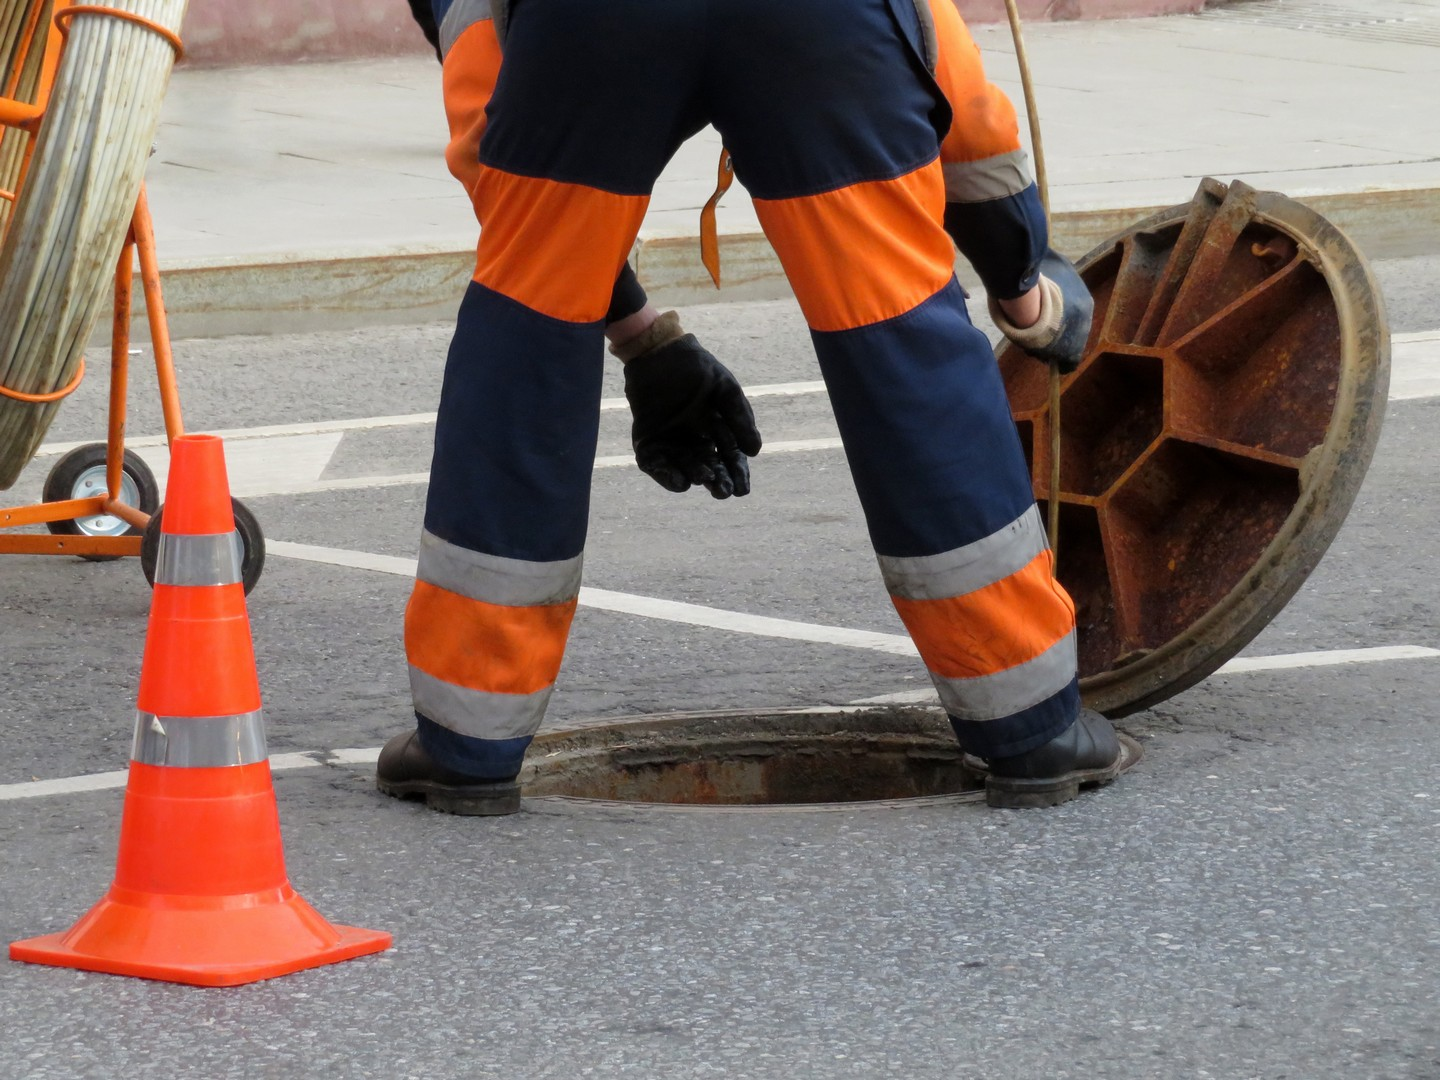 Complete drain cleaning services